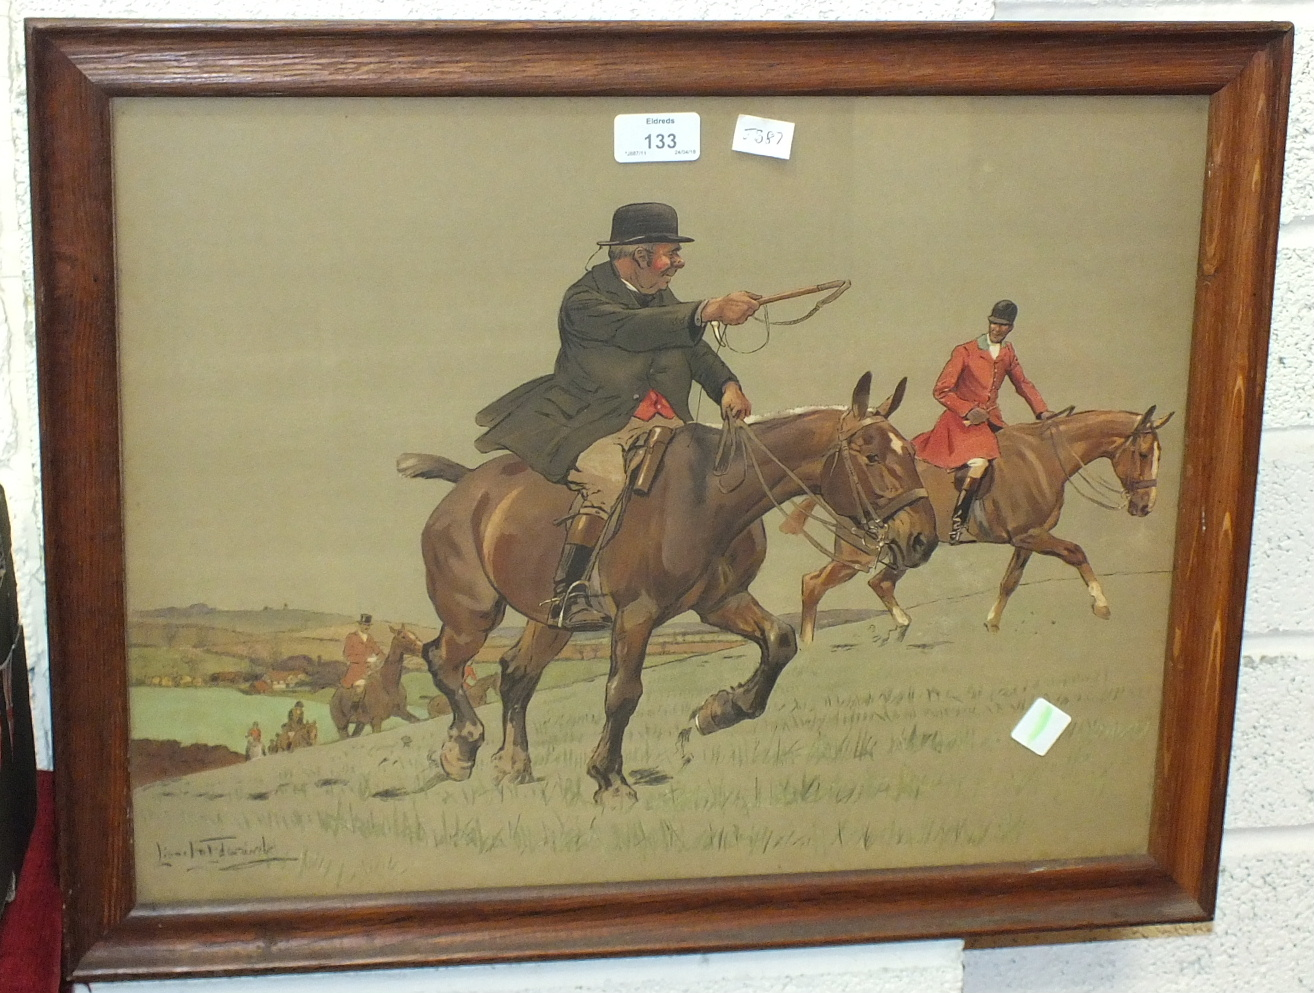 Lot 133 - After Lionel Edwards, 'Old Mr Barleycorn', a framed coloured print, 39 x 49cm and other pictures and